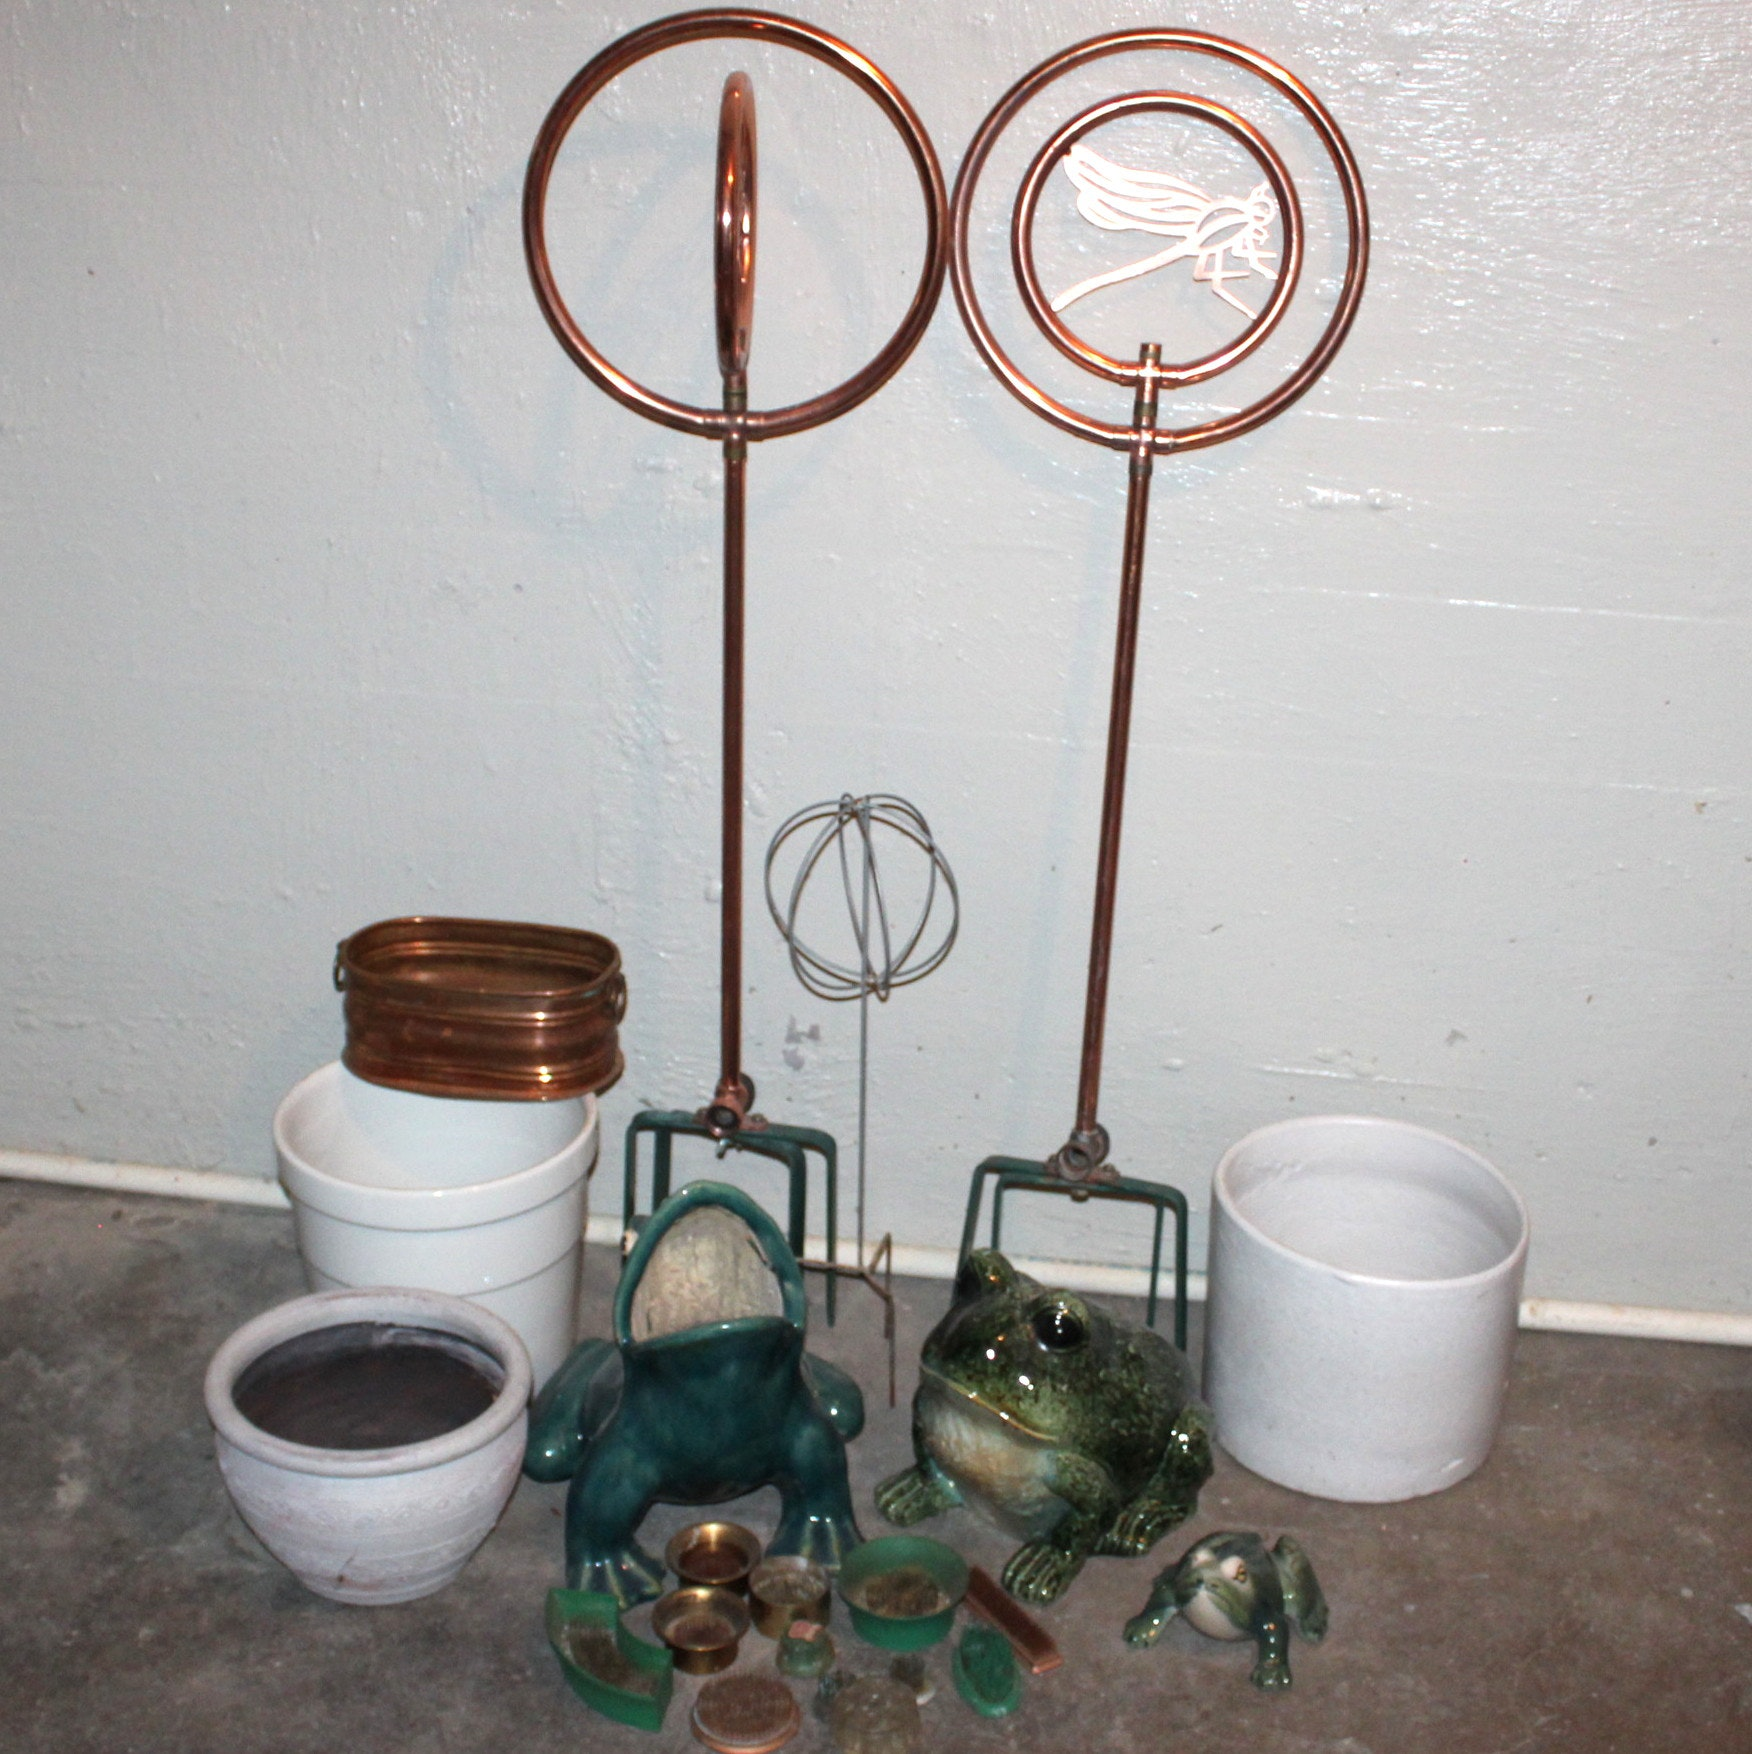 Selection of Vintage and Other Garden Decor